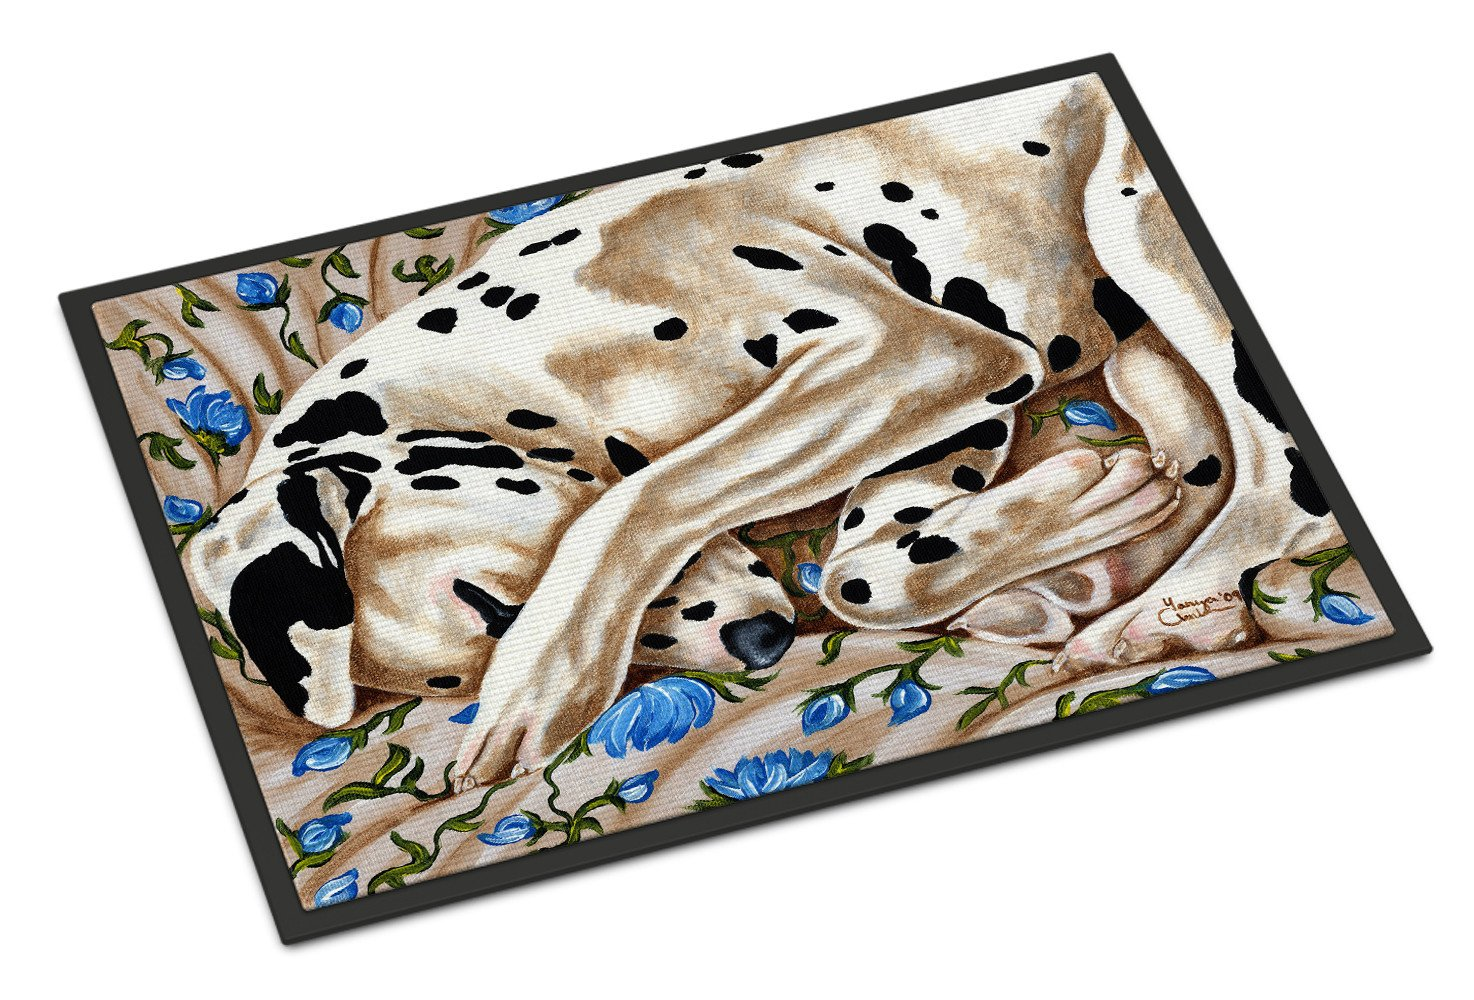 Bed of Roses Dalmatian Indoor or Outdoor Mat 24x36 AMB1407JMAT - the-store.com